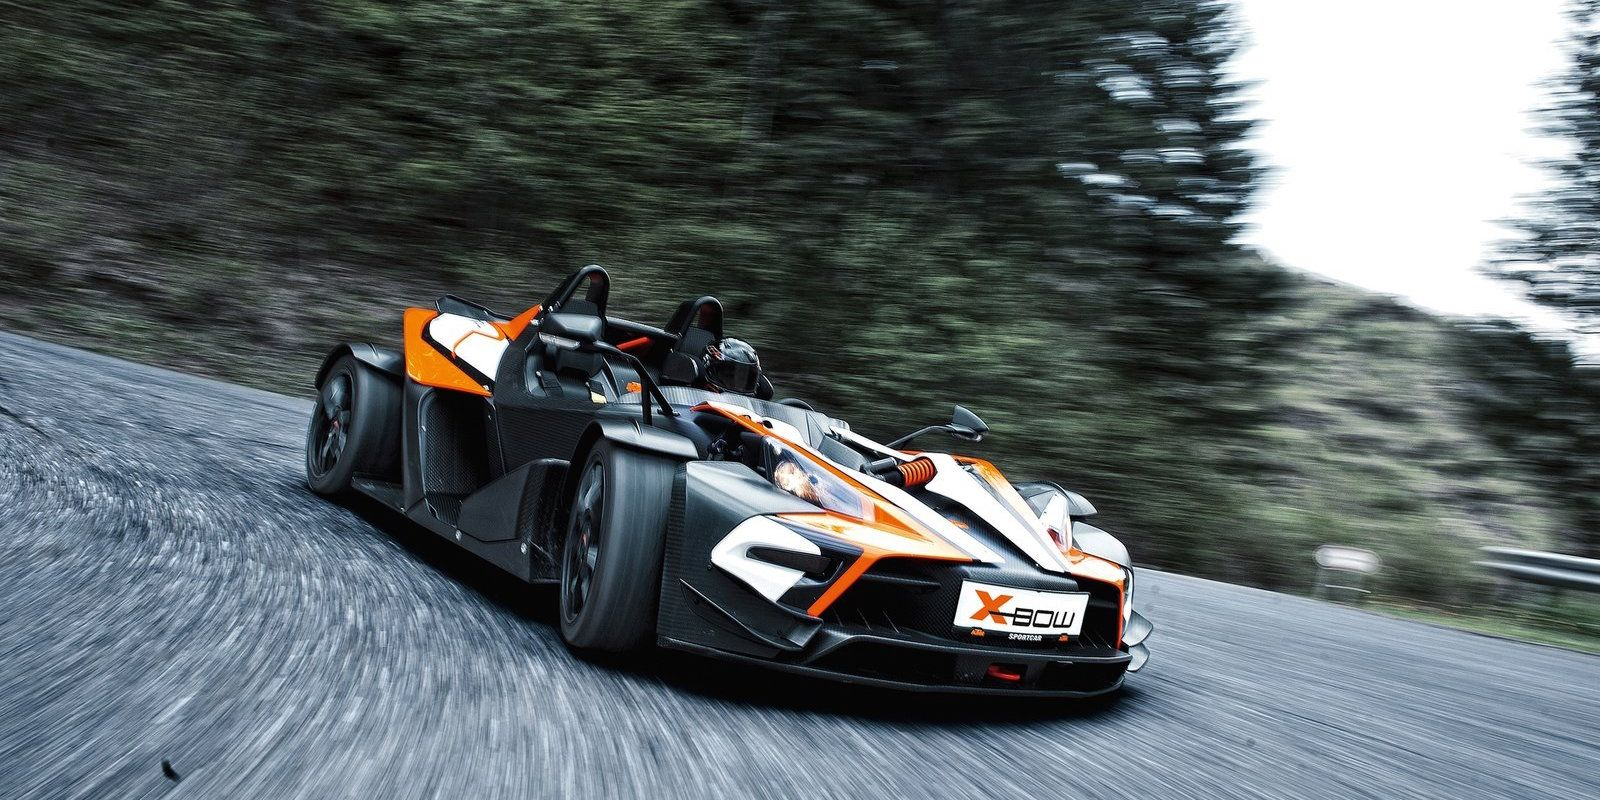 Ktm Will Bring The X Bow Track Car To The U S Next Year